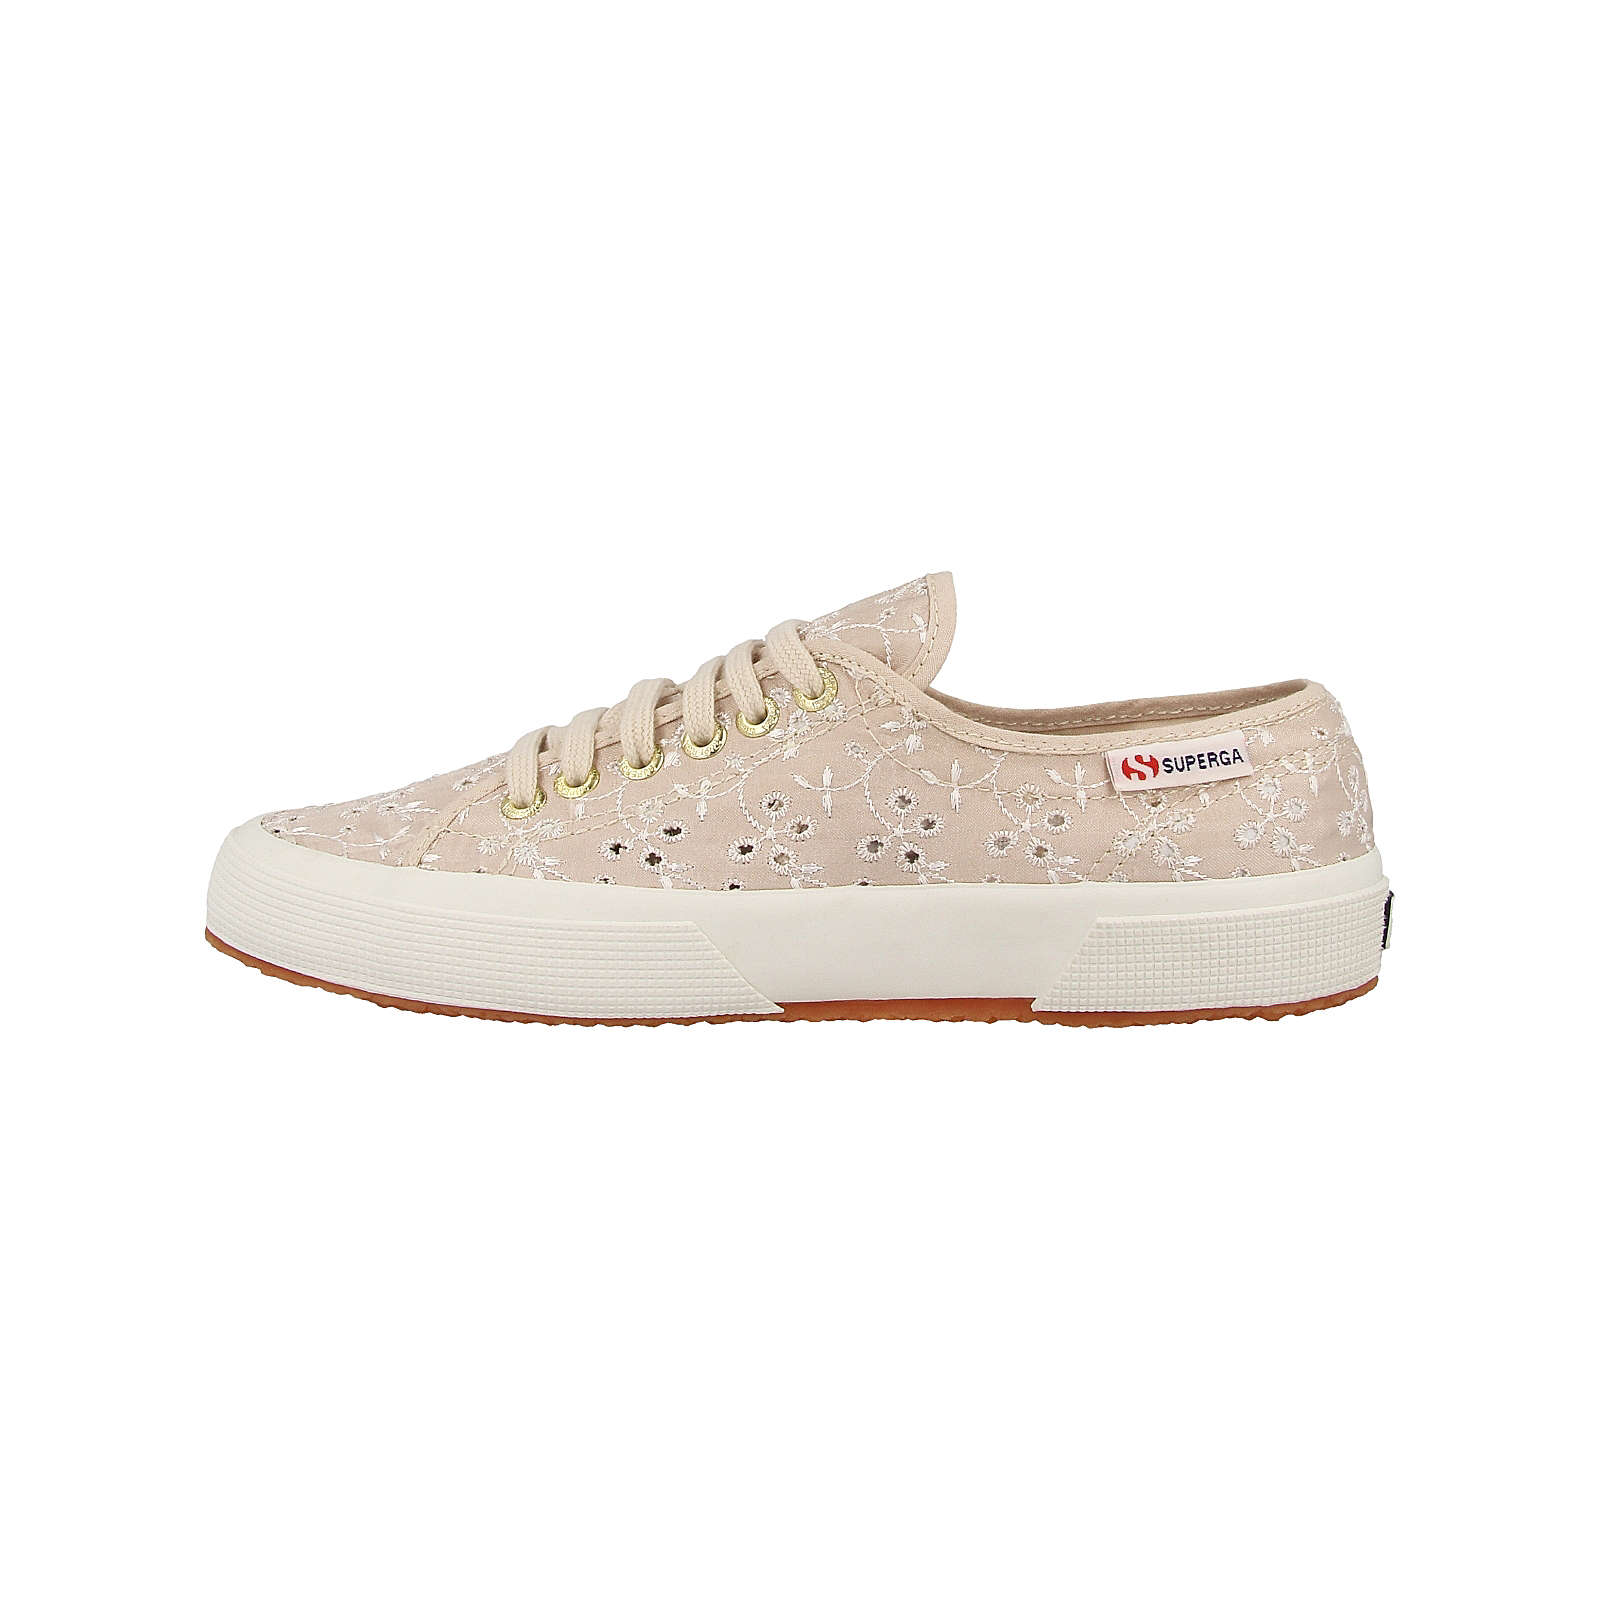 Superga® Sneakers Low Sangallo beige Damen Gr. 38